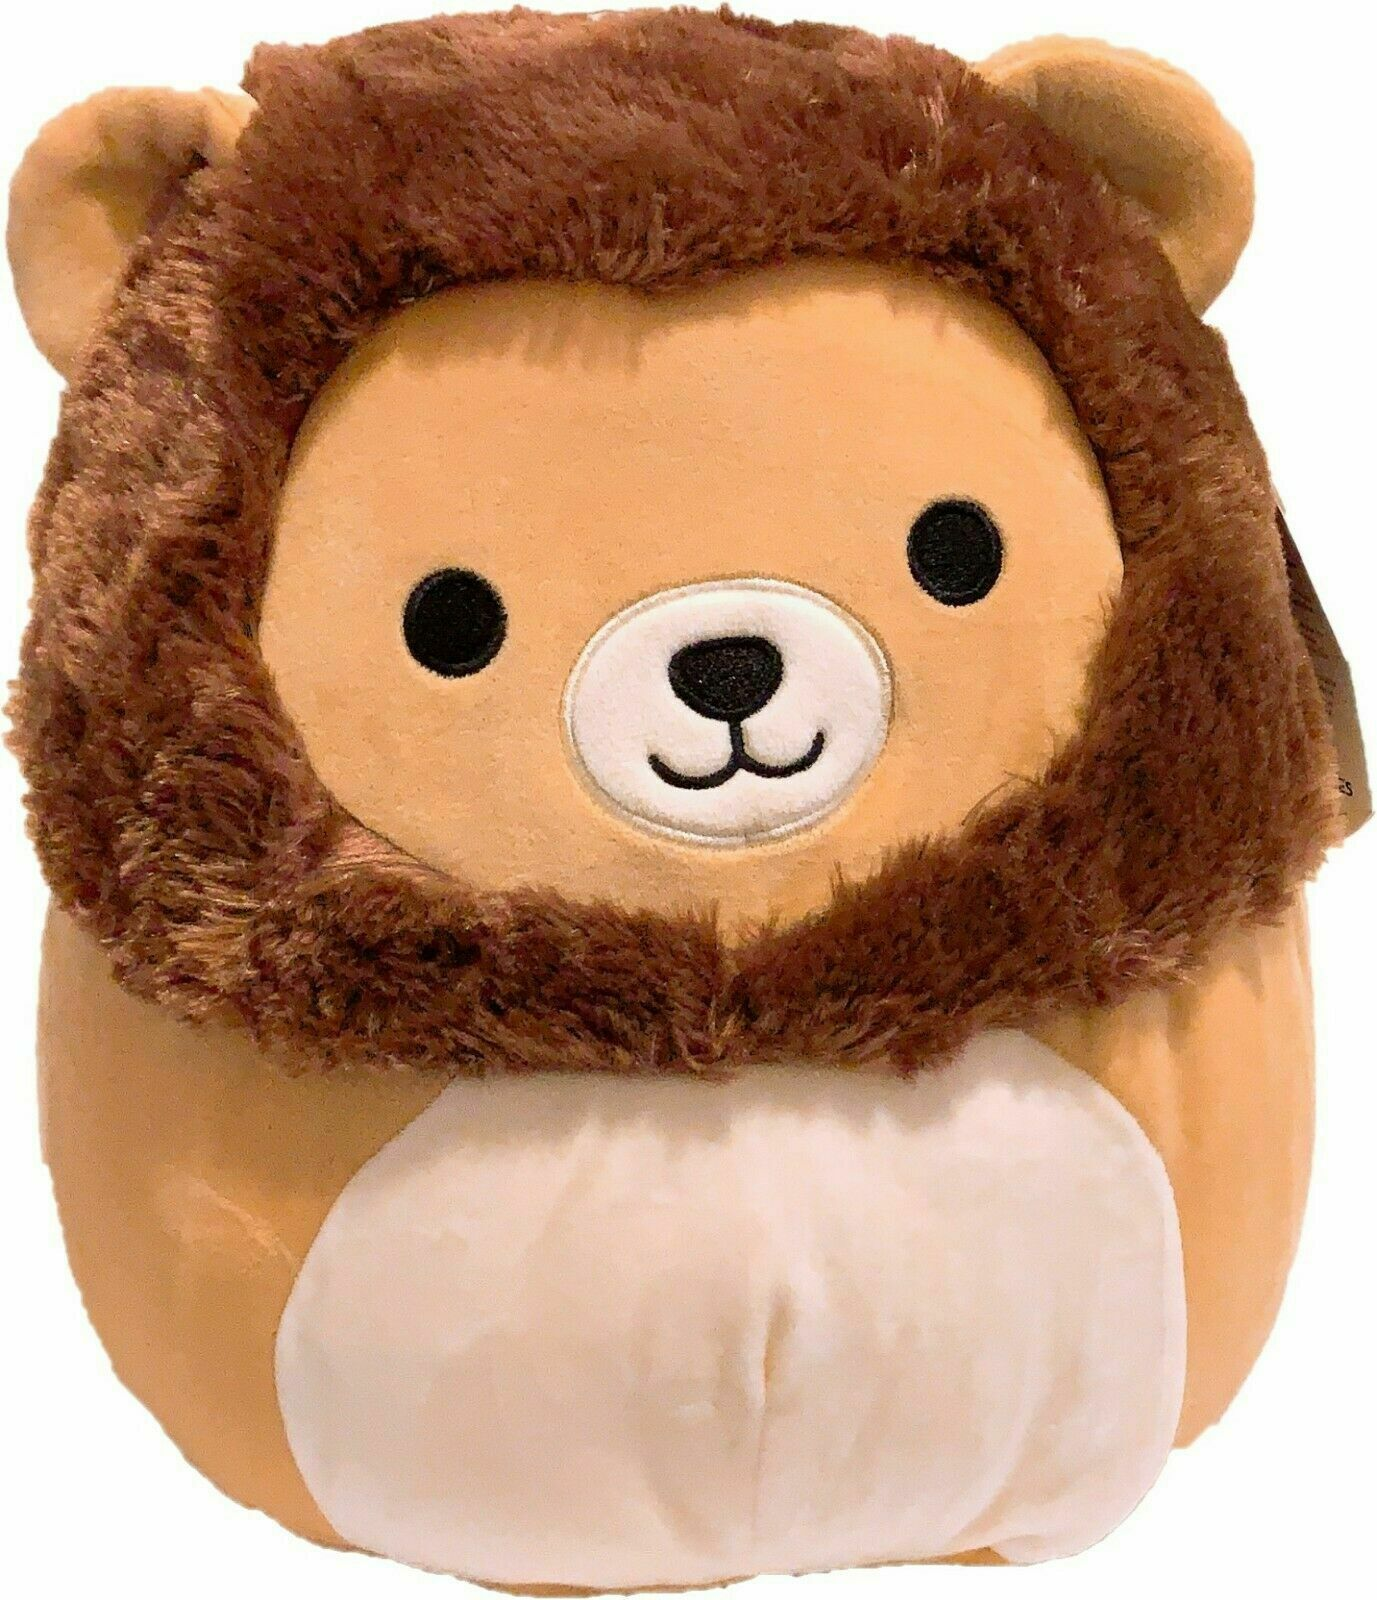 Squishmallows 7 Plush Francis The Lion In 2020 Cute Stuffed Animals Plush Animals Pillow Pals